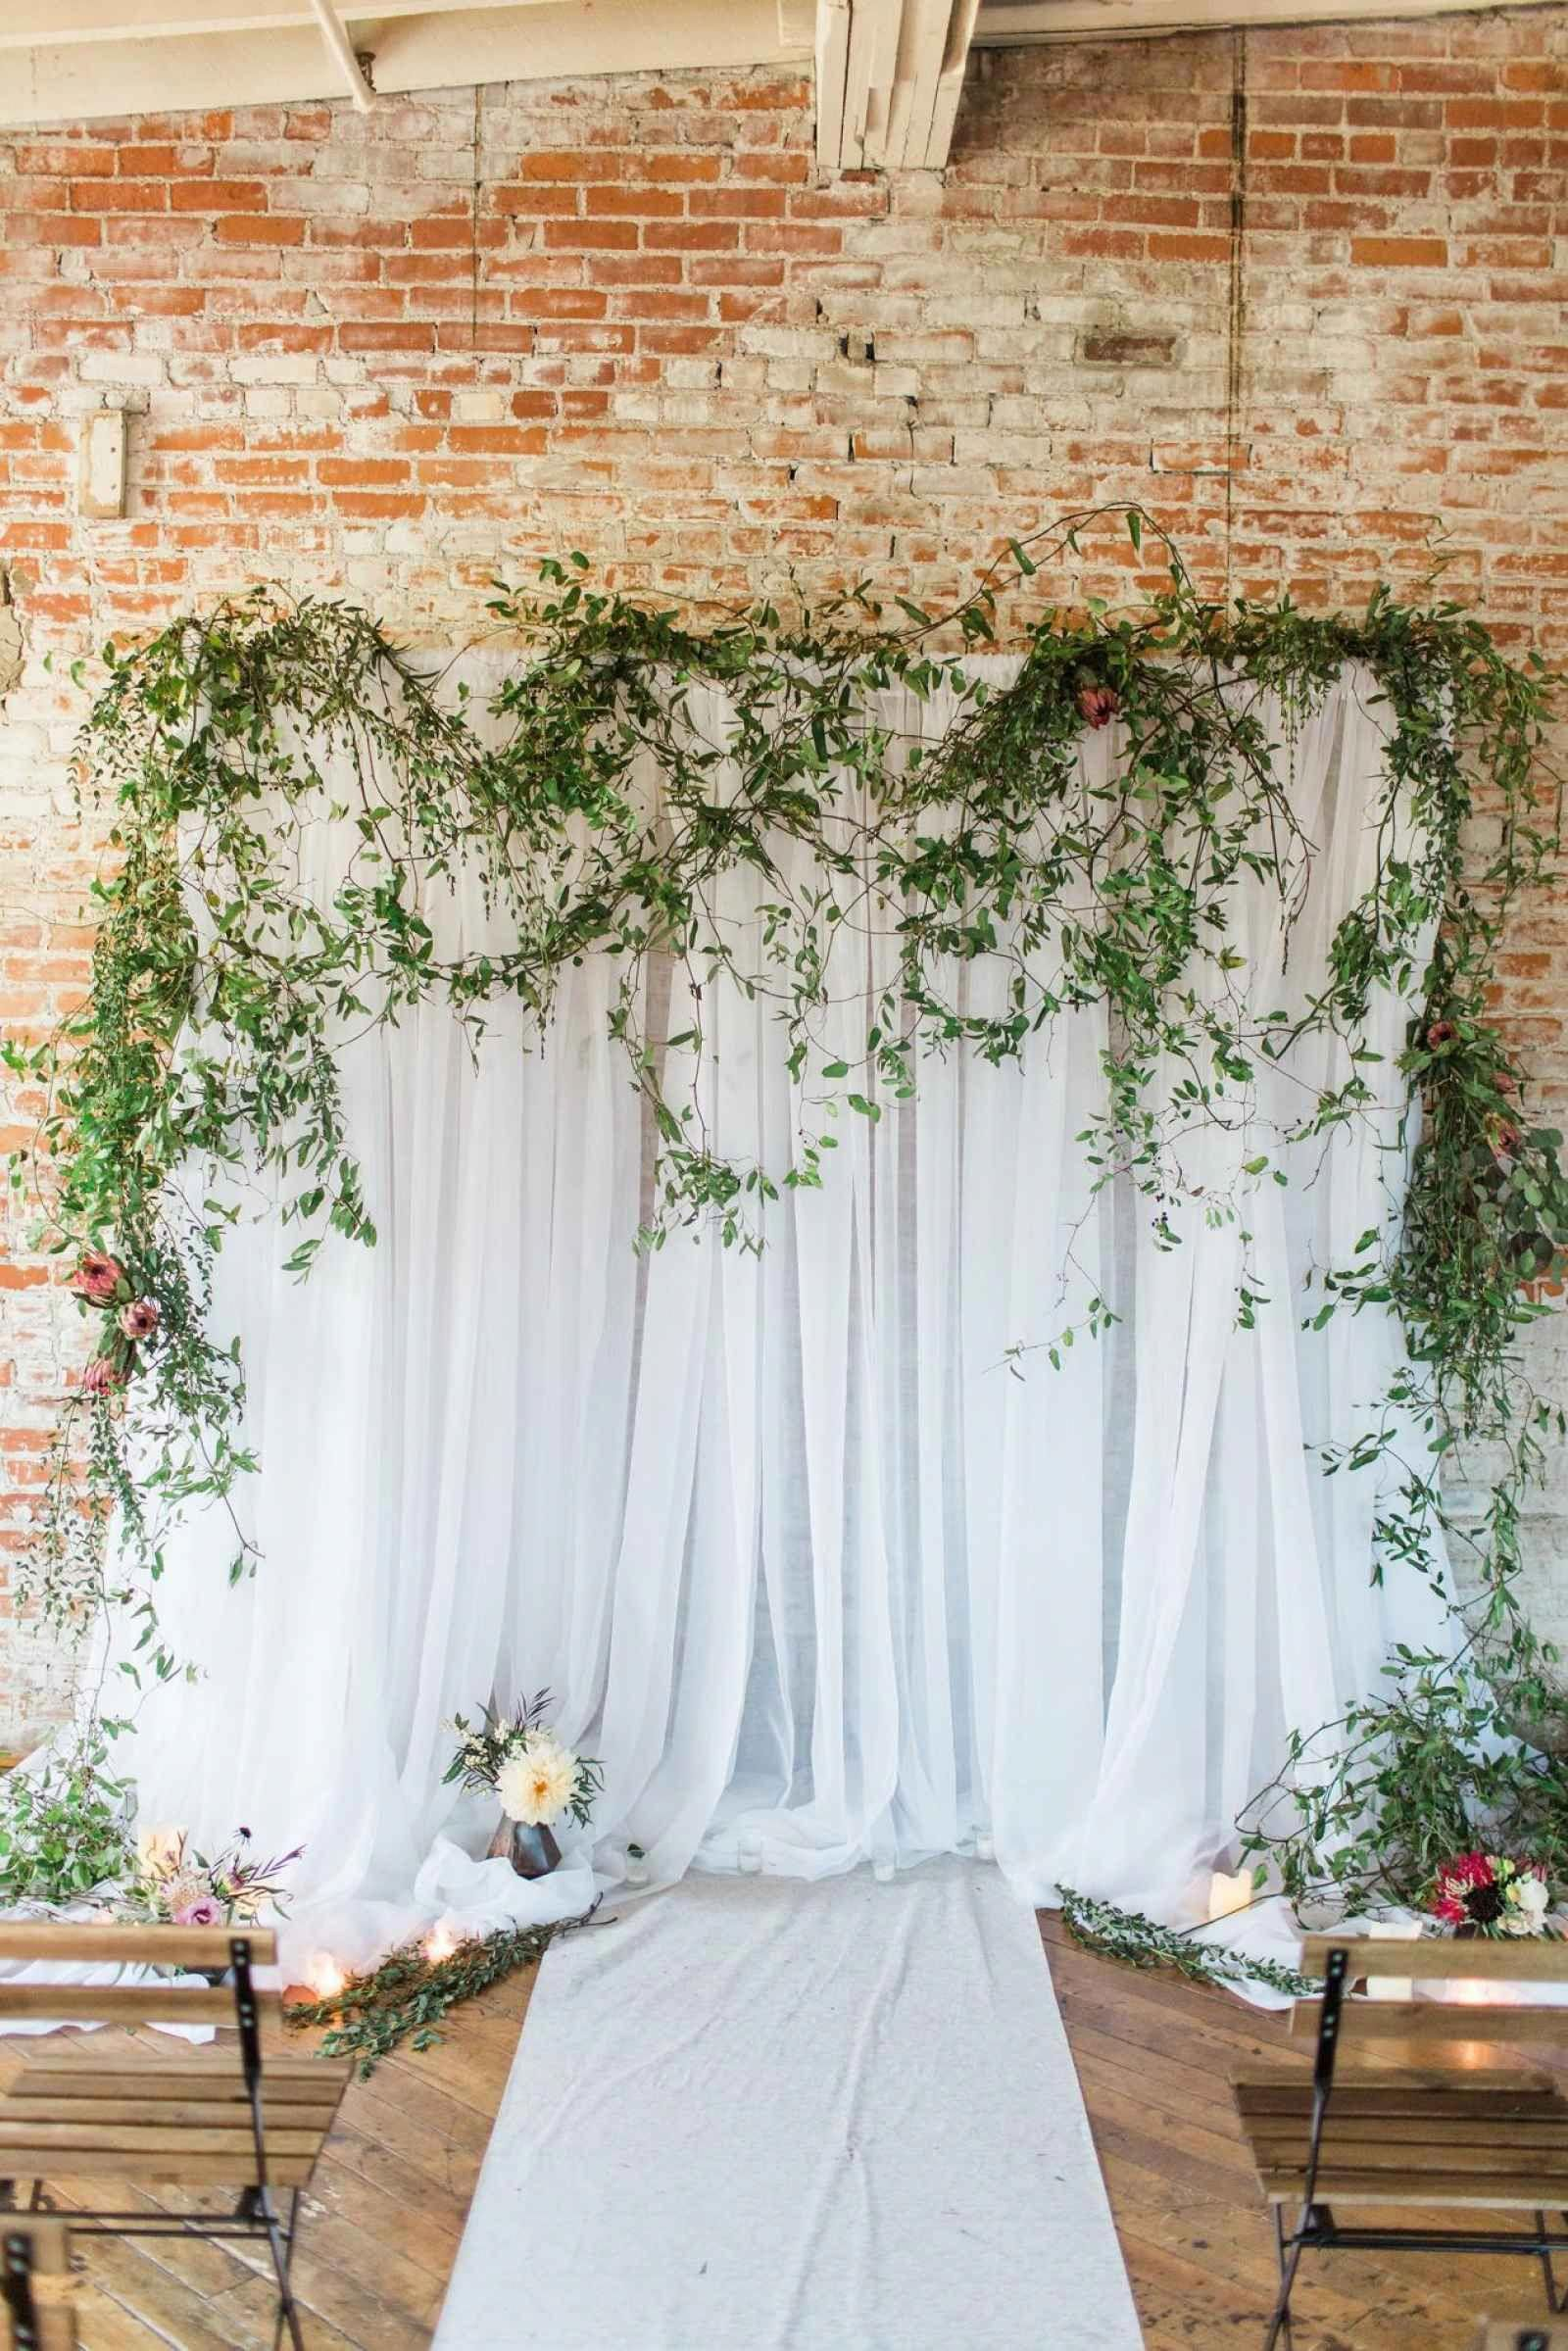 Strategies For Wedding Ceremony Decorations Contact Florists Near To The Destina Wedding Ceremony Backdrop Indoor Indoor Wedding Ceremonies Ceremony Backdrop